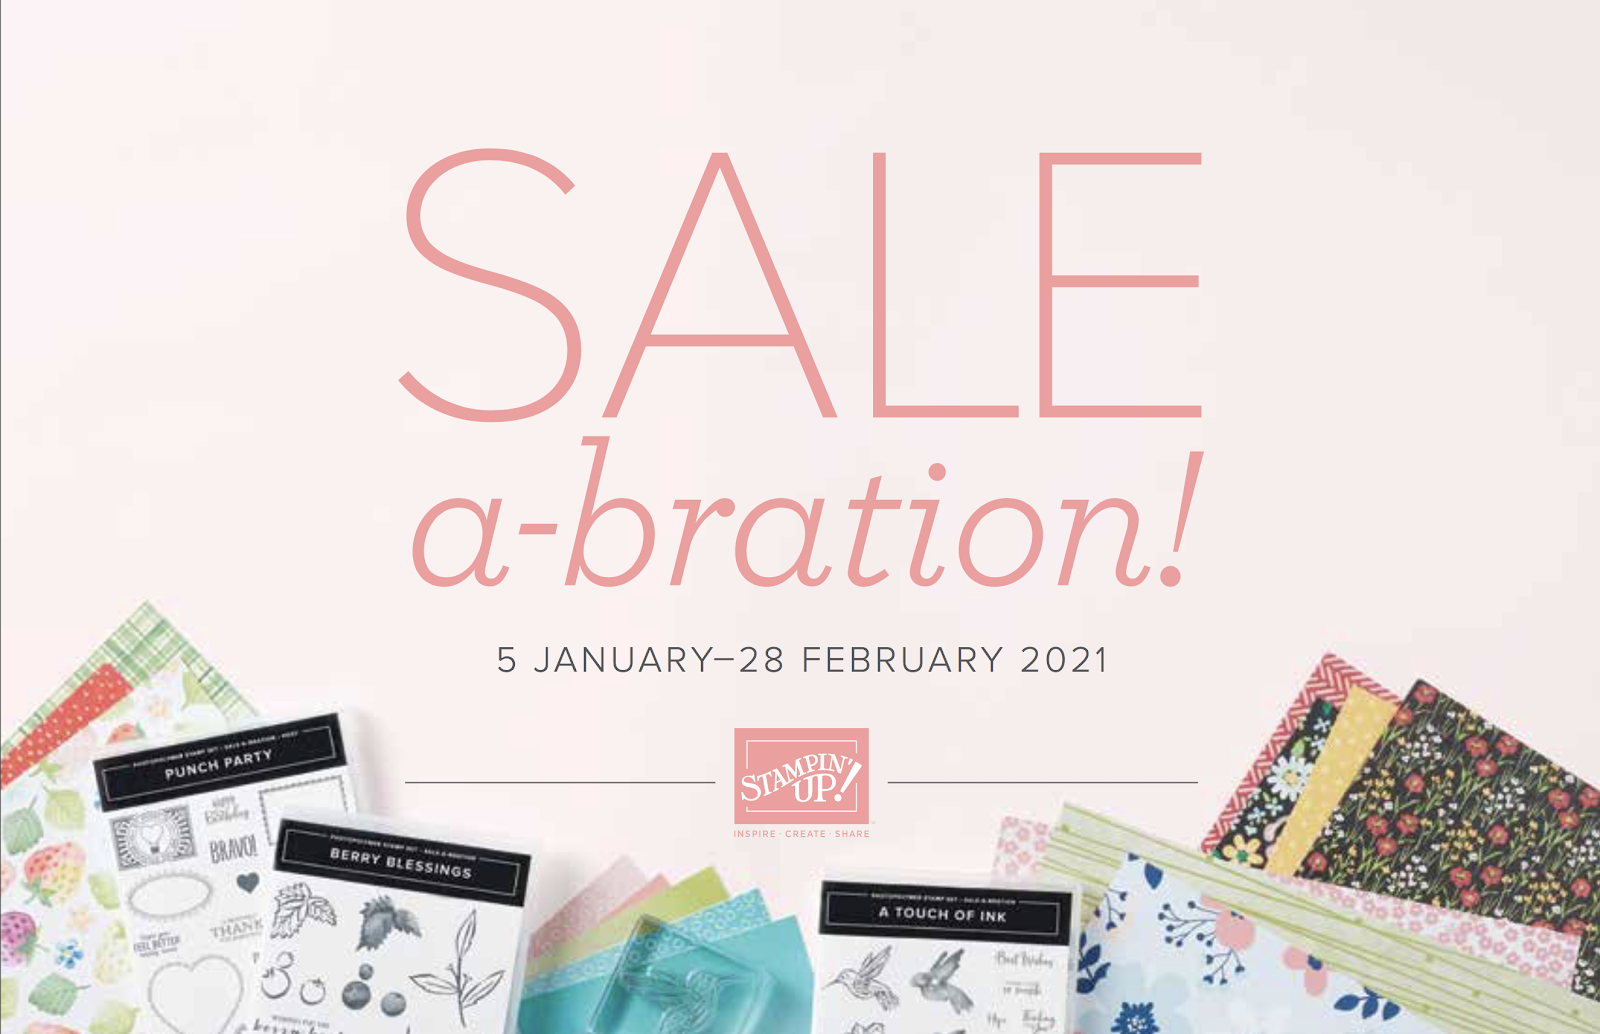 January-February 2021 Sale-A-bration Brochure